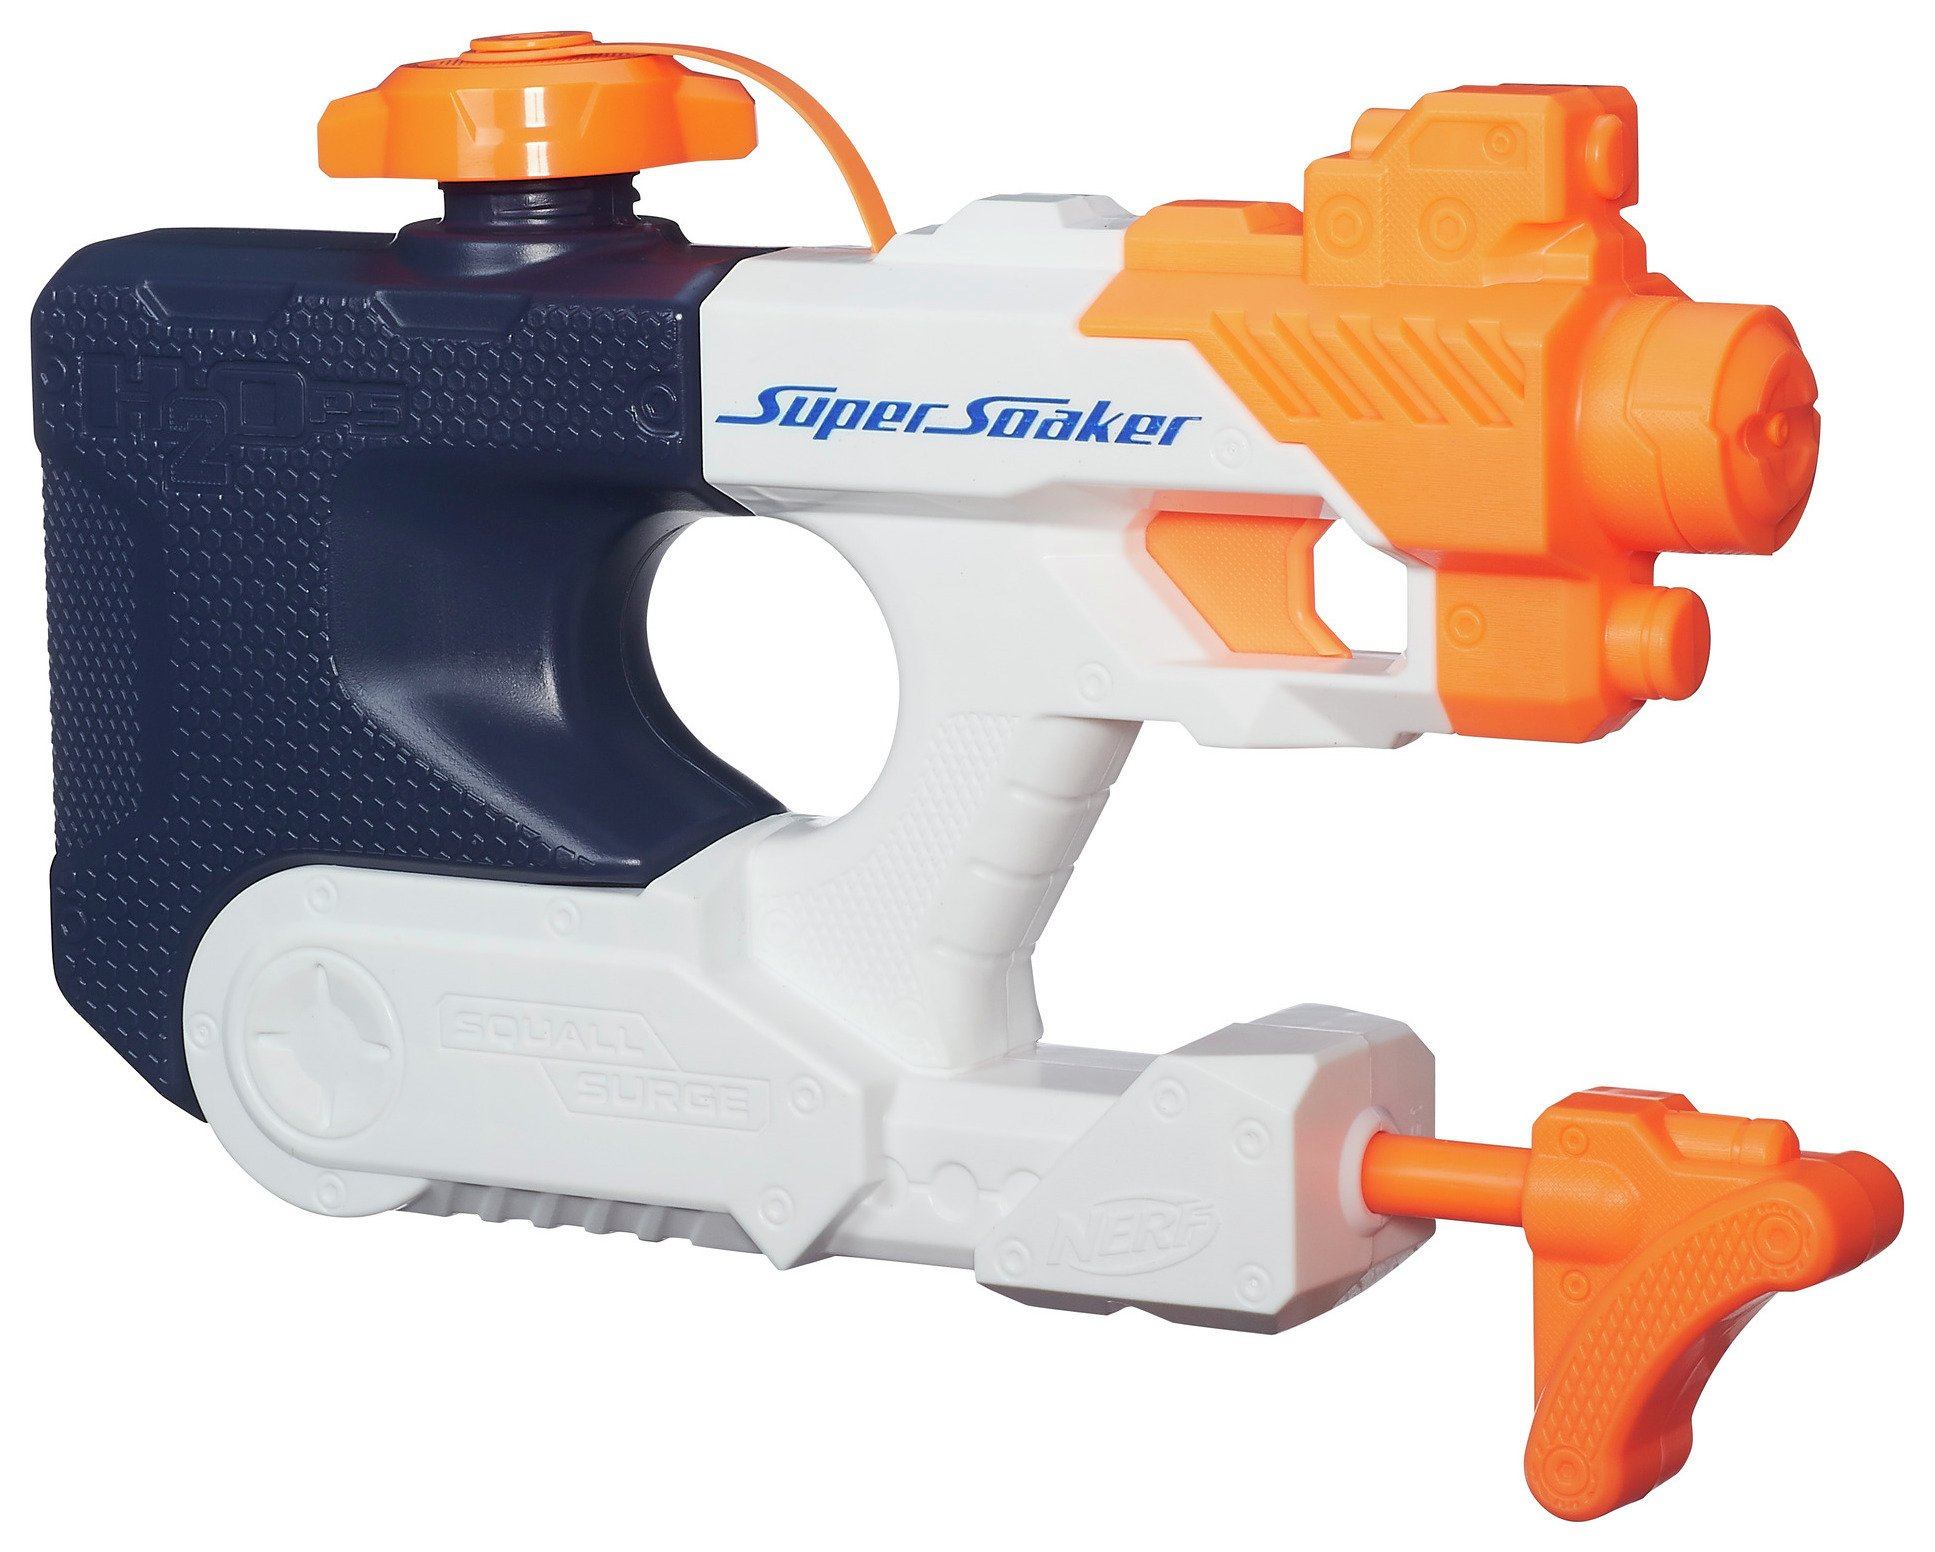 nerf supersoaker squall surge water gun